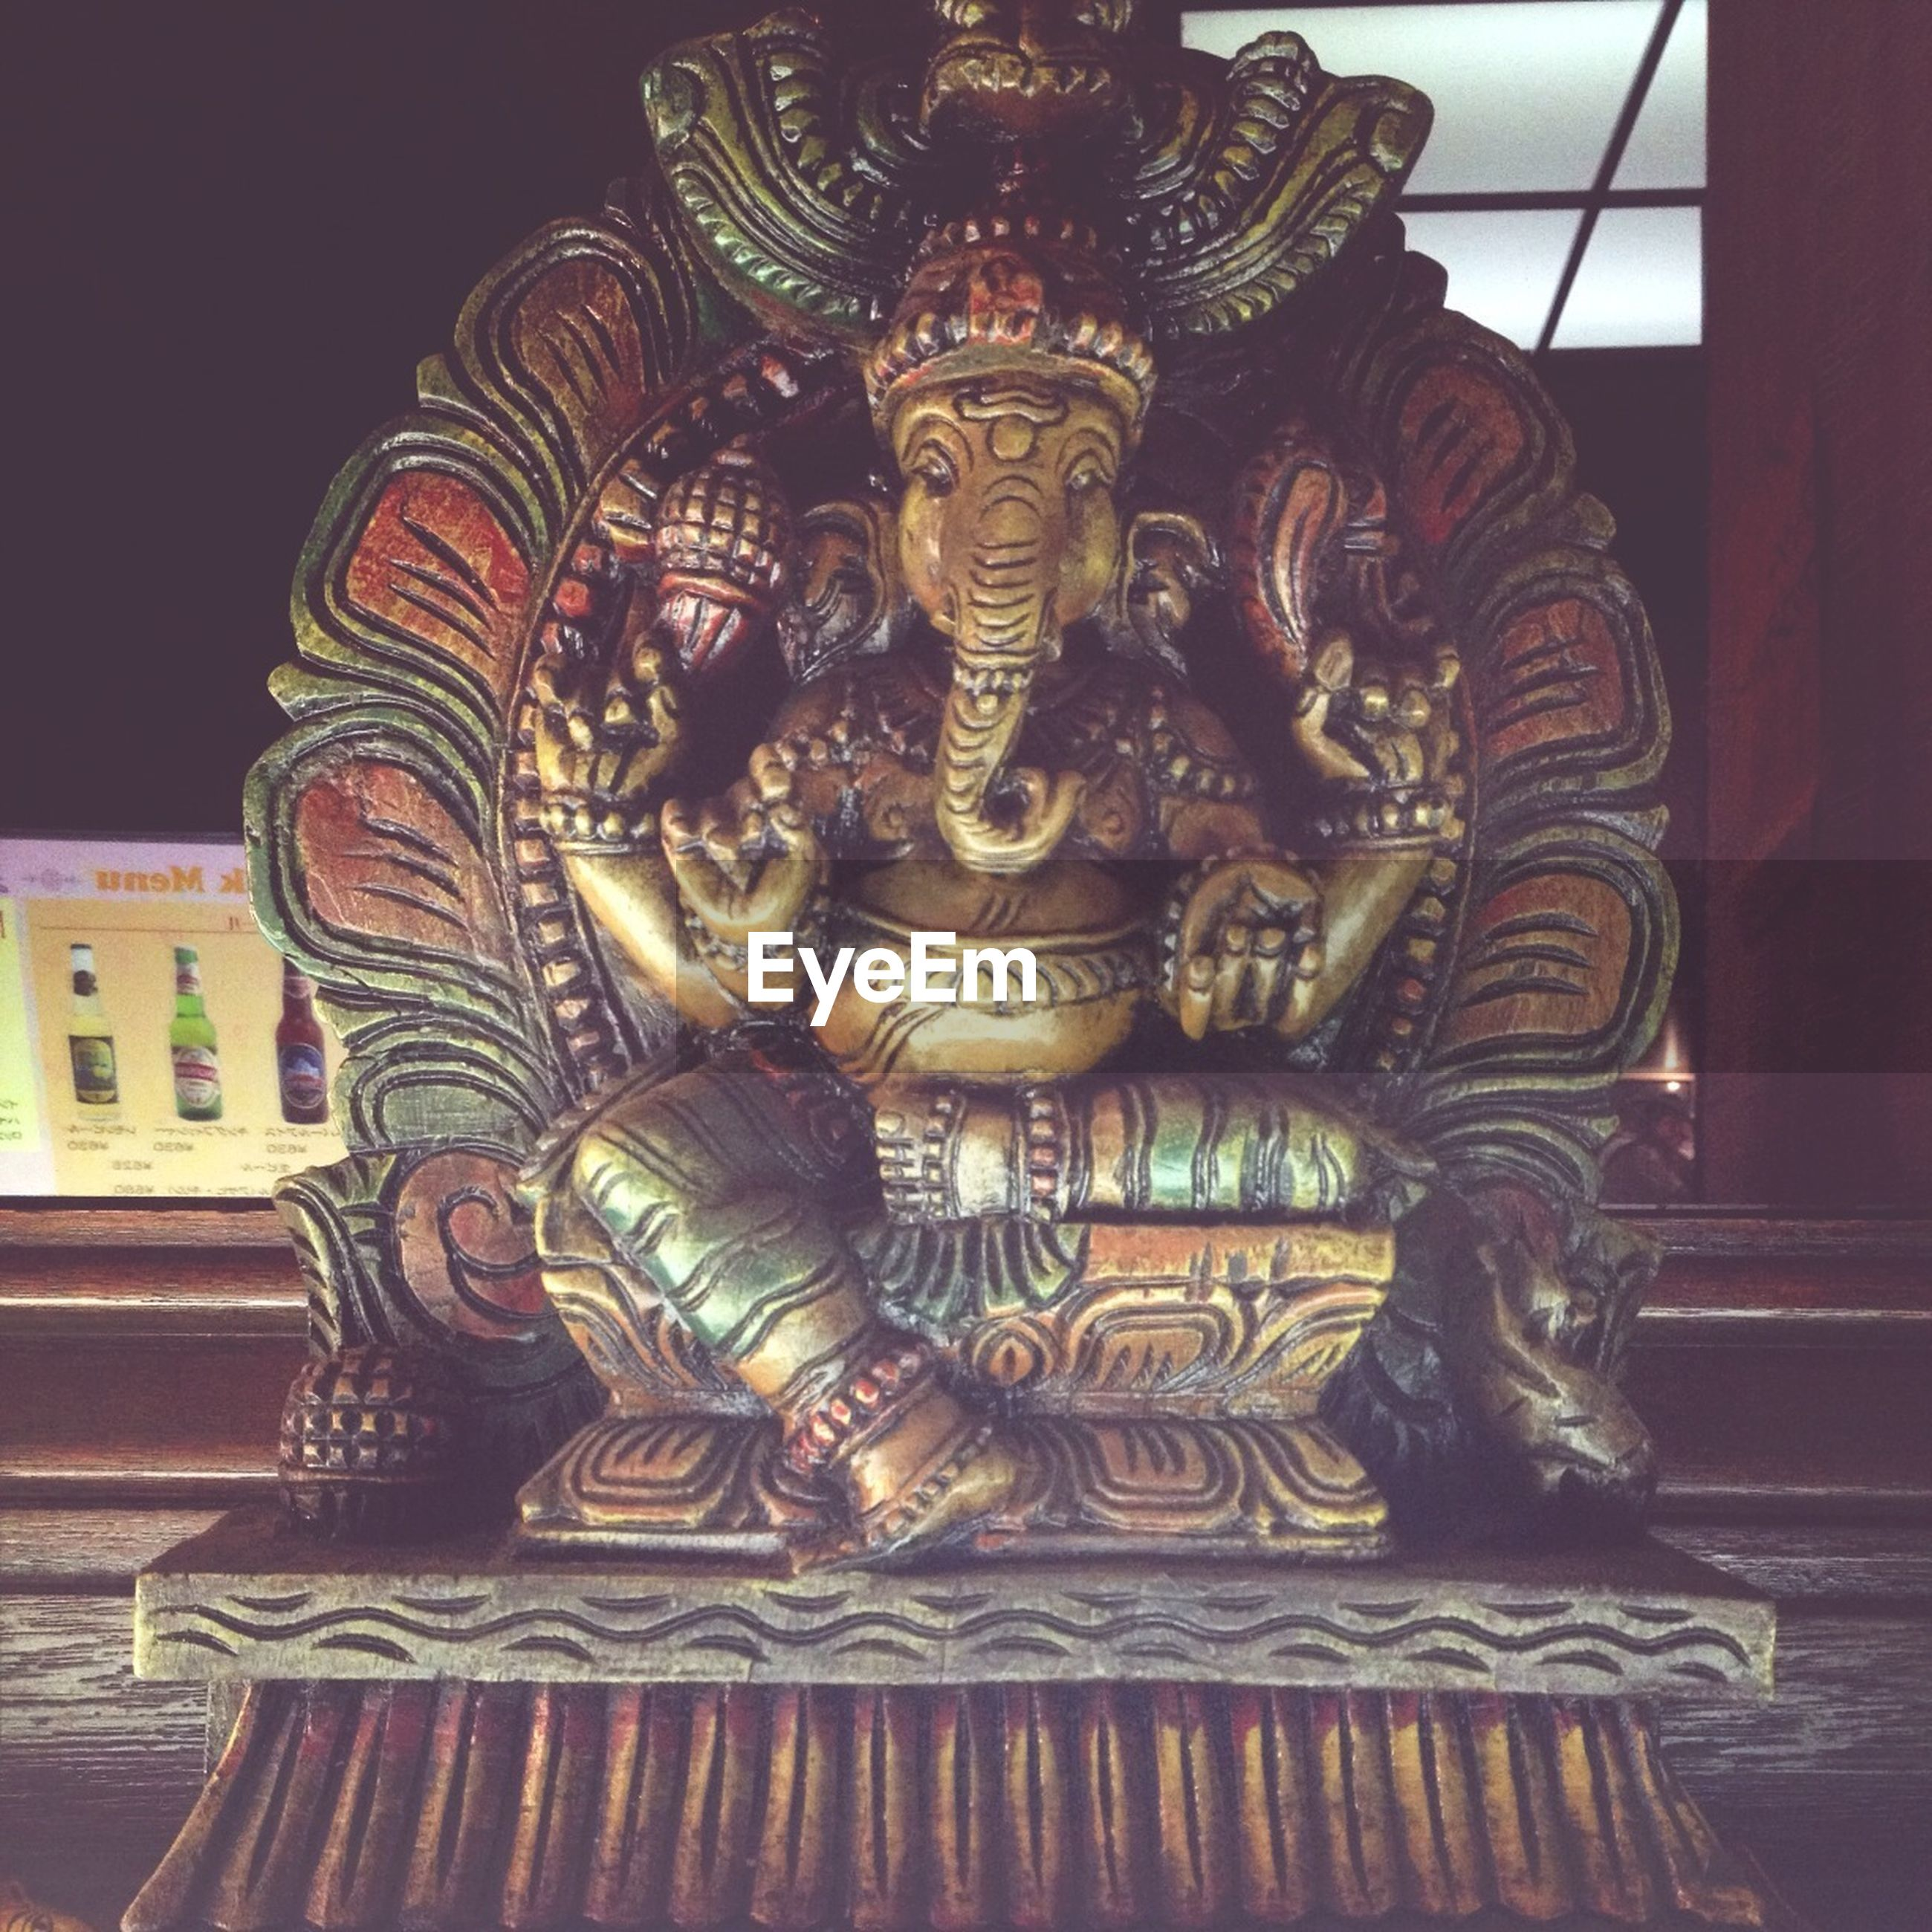 indoors, art and craft, art, creativity, ornate, sculpture, statue, human representation, gold colored, carving - craft product, design, low angle view, religion, spirituality, pattern, place of worship, animal representation, architecture